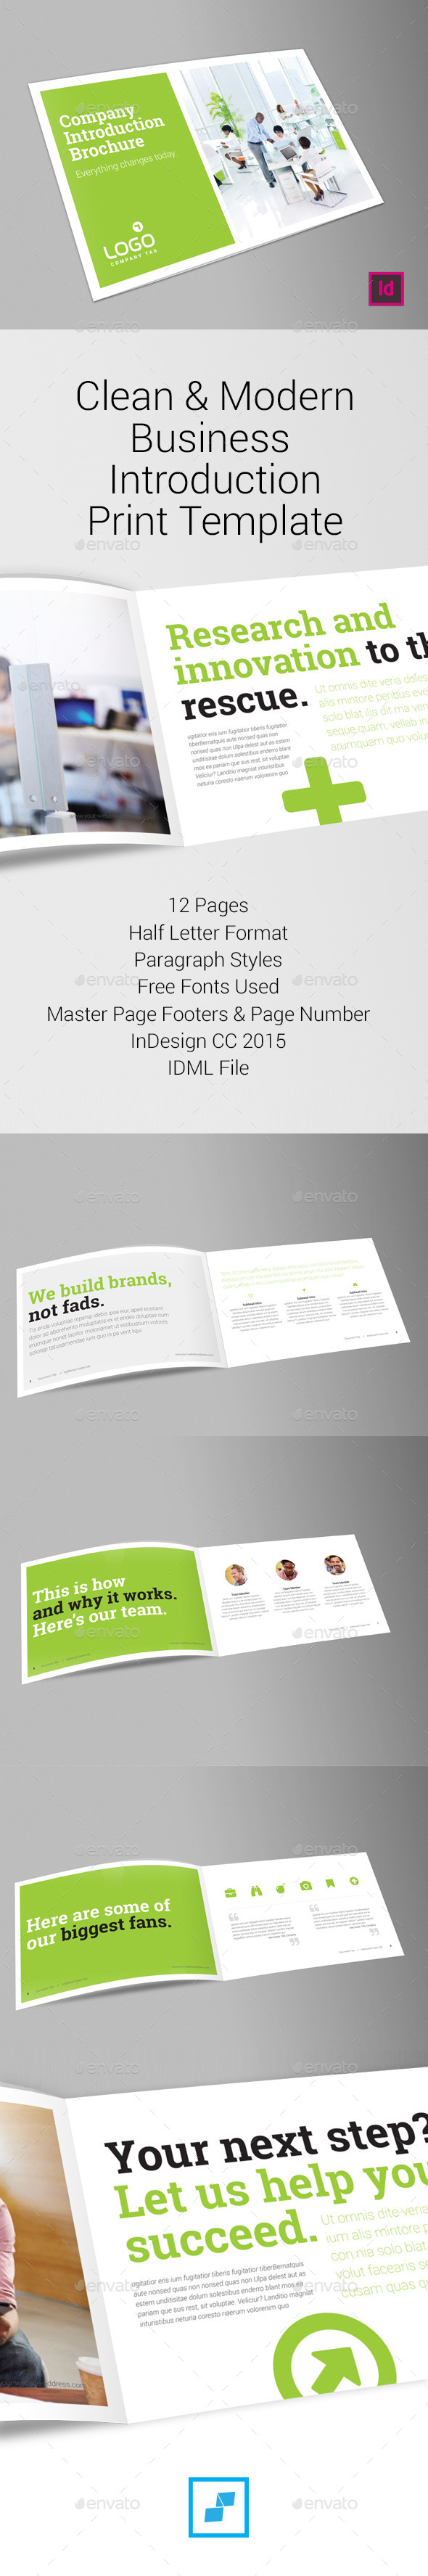 Corporate Introduction Brochure - Corporate Brochures